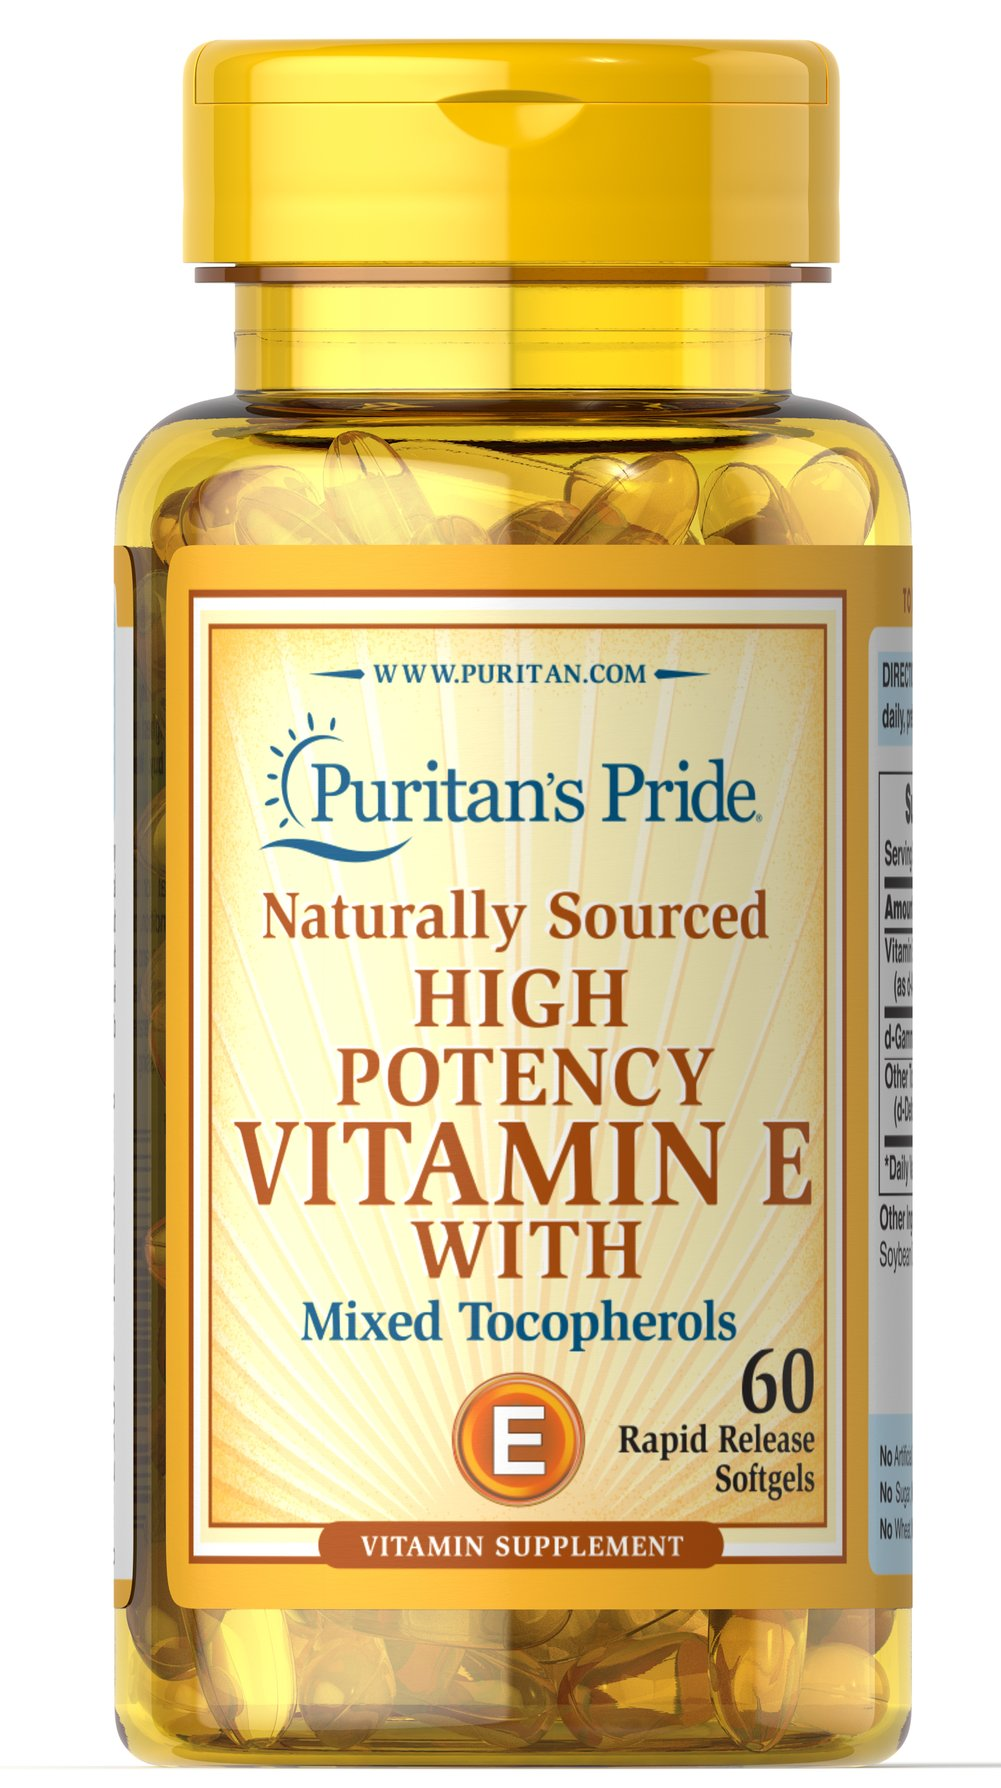 Vitamin E Complex High Gamma Natural <p>Superior Blend of <strong>d-Gamma Tocopherol</strong> with Other Vitamin E Tocopherols</p><p>Gamma-tocopherol is an important Vitamin E component.** High Gamma Tocopherol is a concentrated blend of both gamma and alpha-tocopherols (plus tocotrienols), which support heart health and have exceptional antioxidant properties.**</p> 60 Softgels 200 IU $29.99